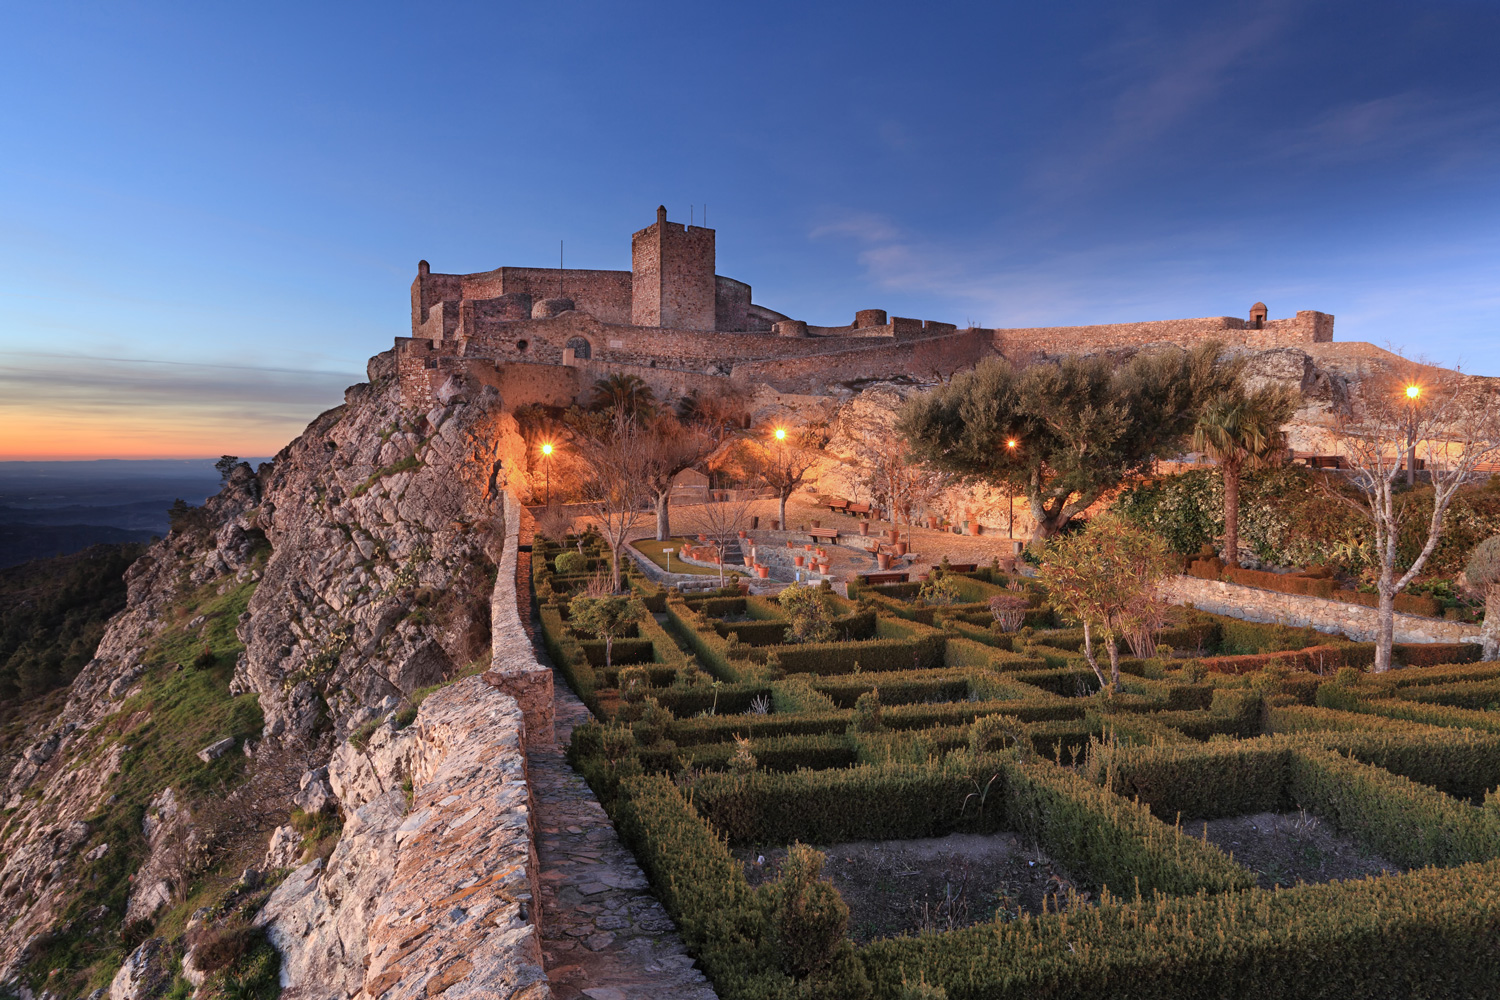 The sun sets over Marvao's clifftop castle in Portugal's Alentejo region